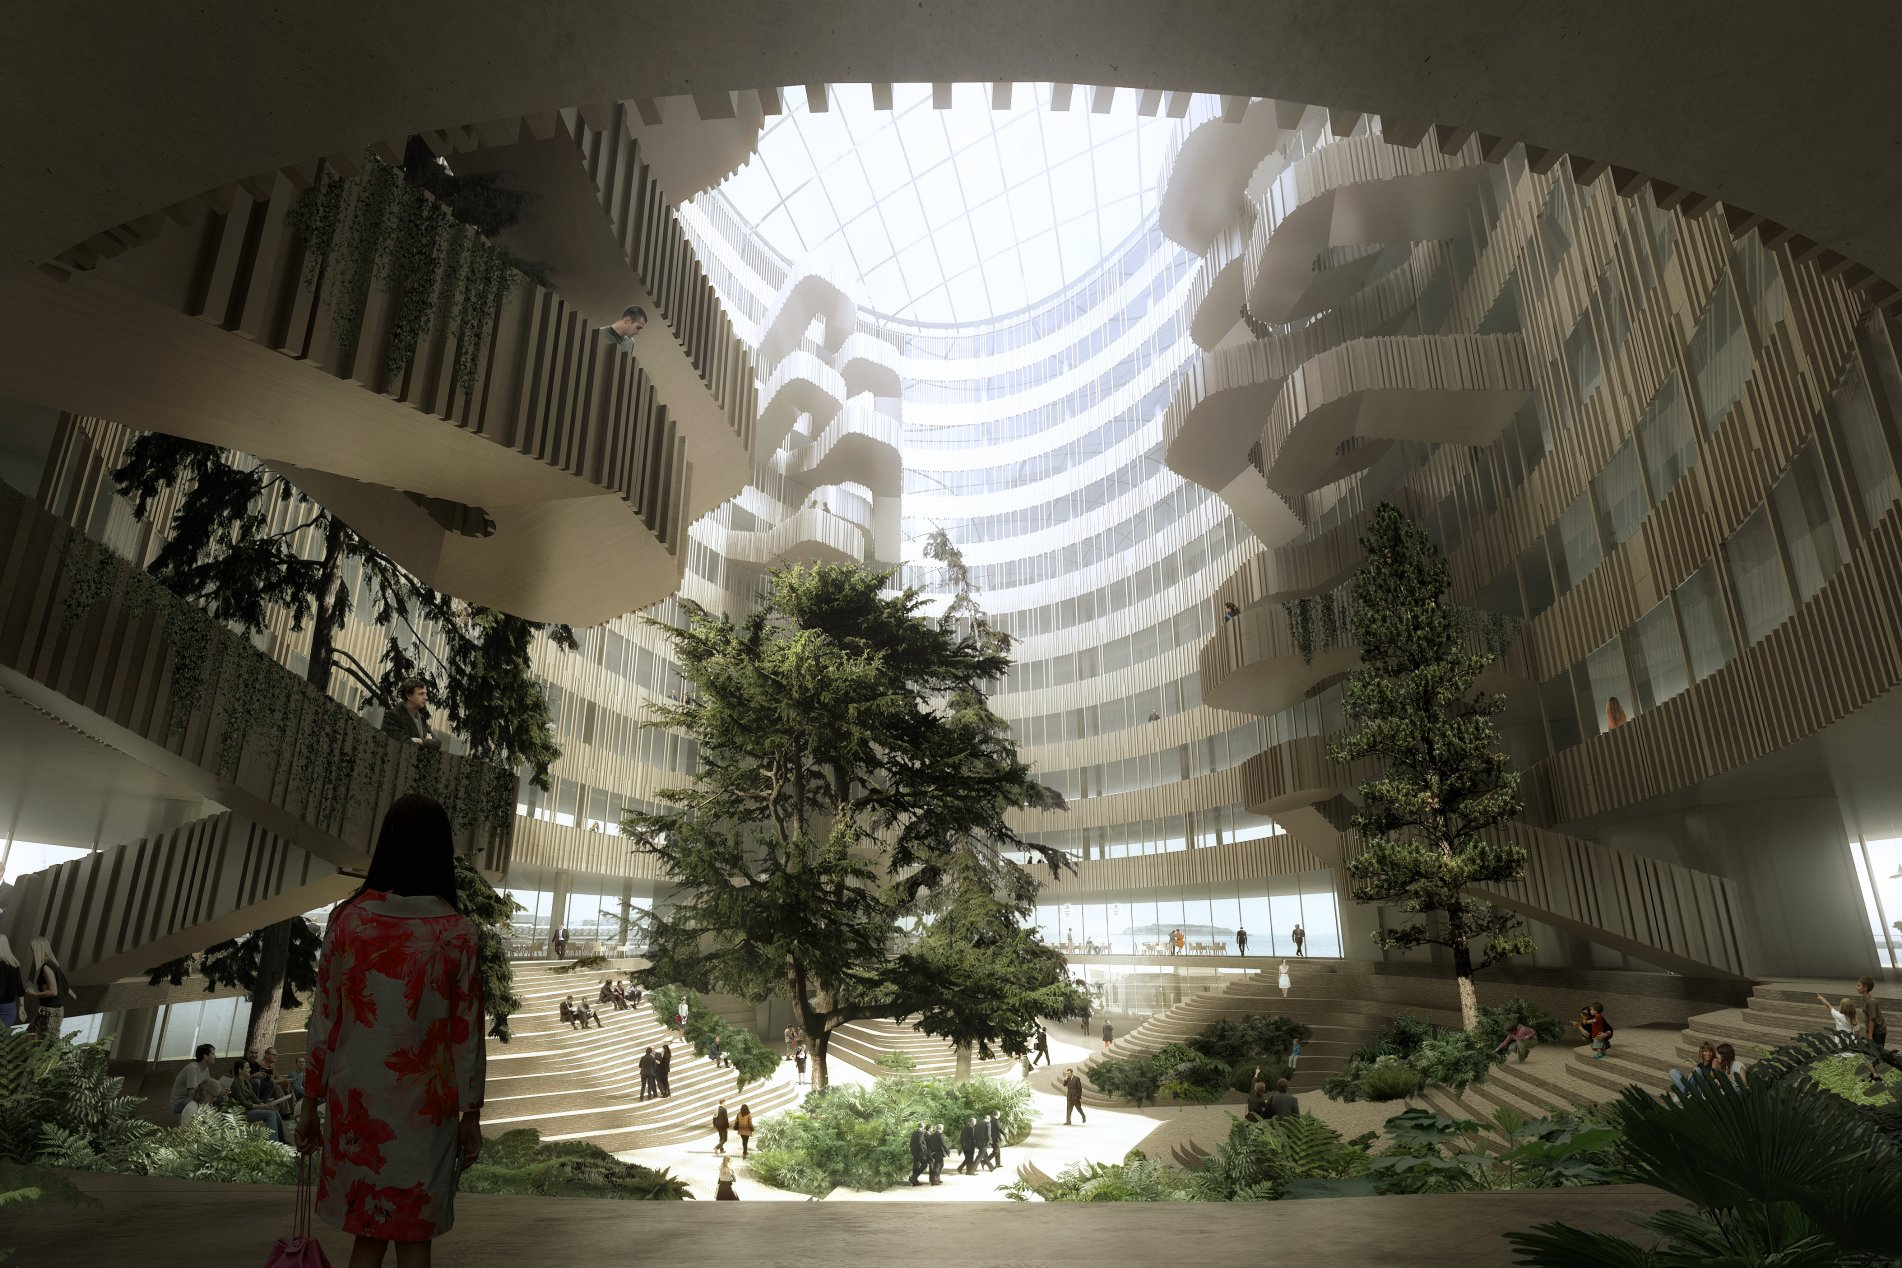 A 21st century winter garden for Denmark's chilly new city